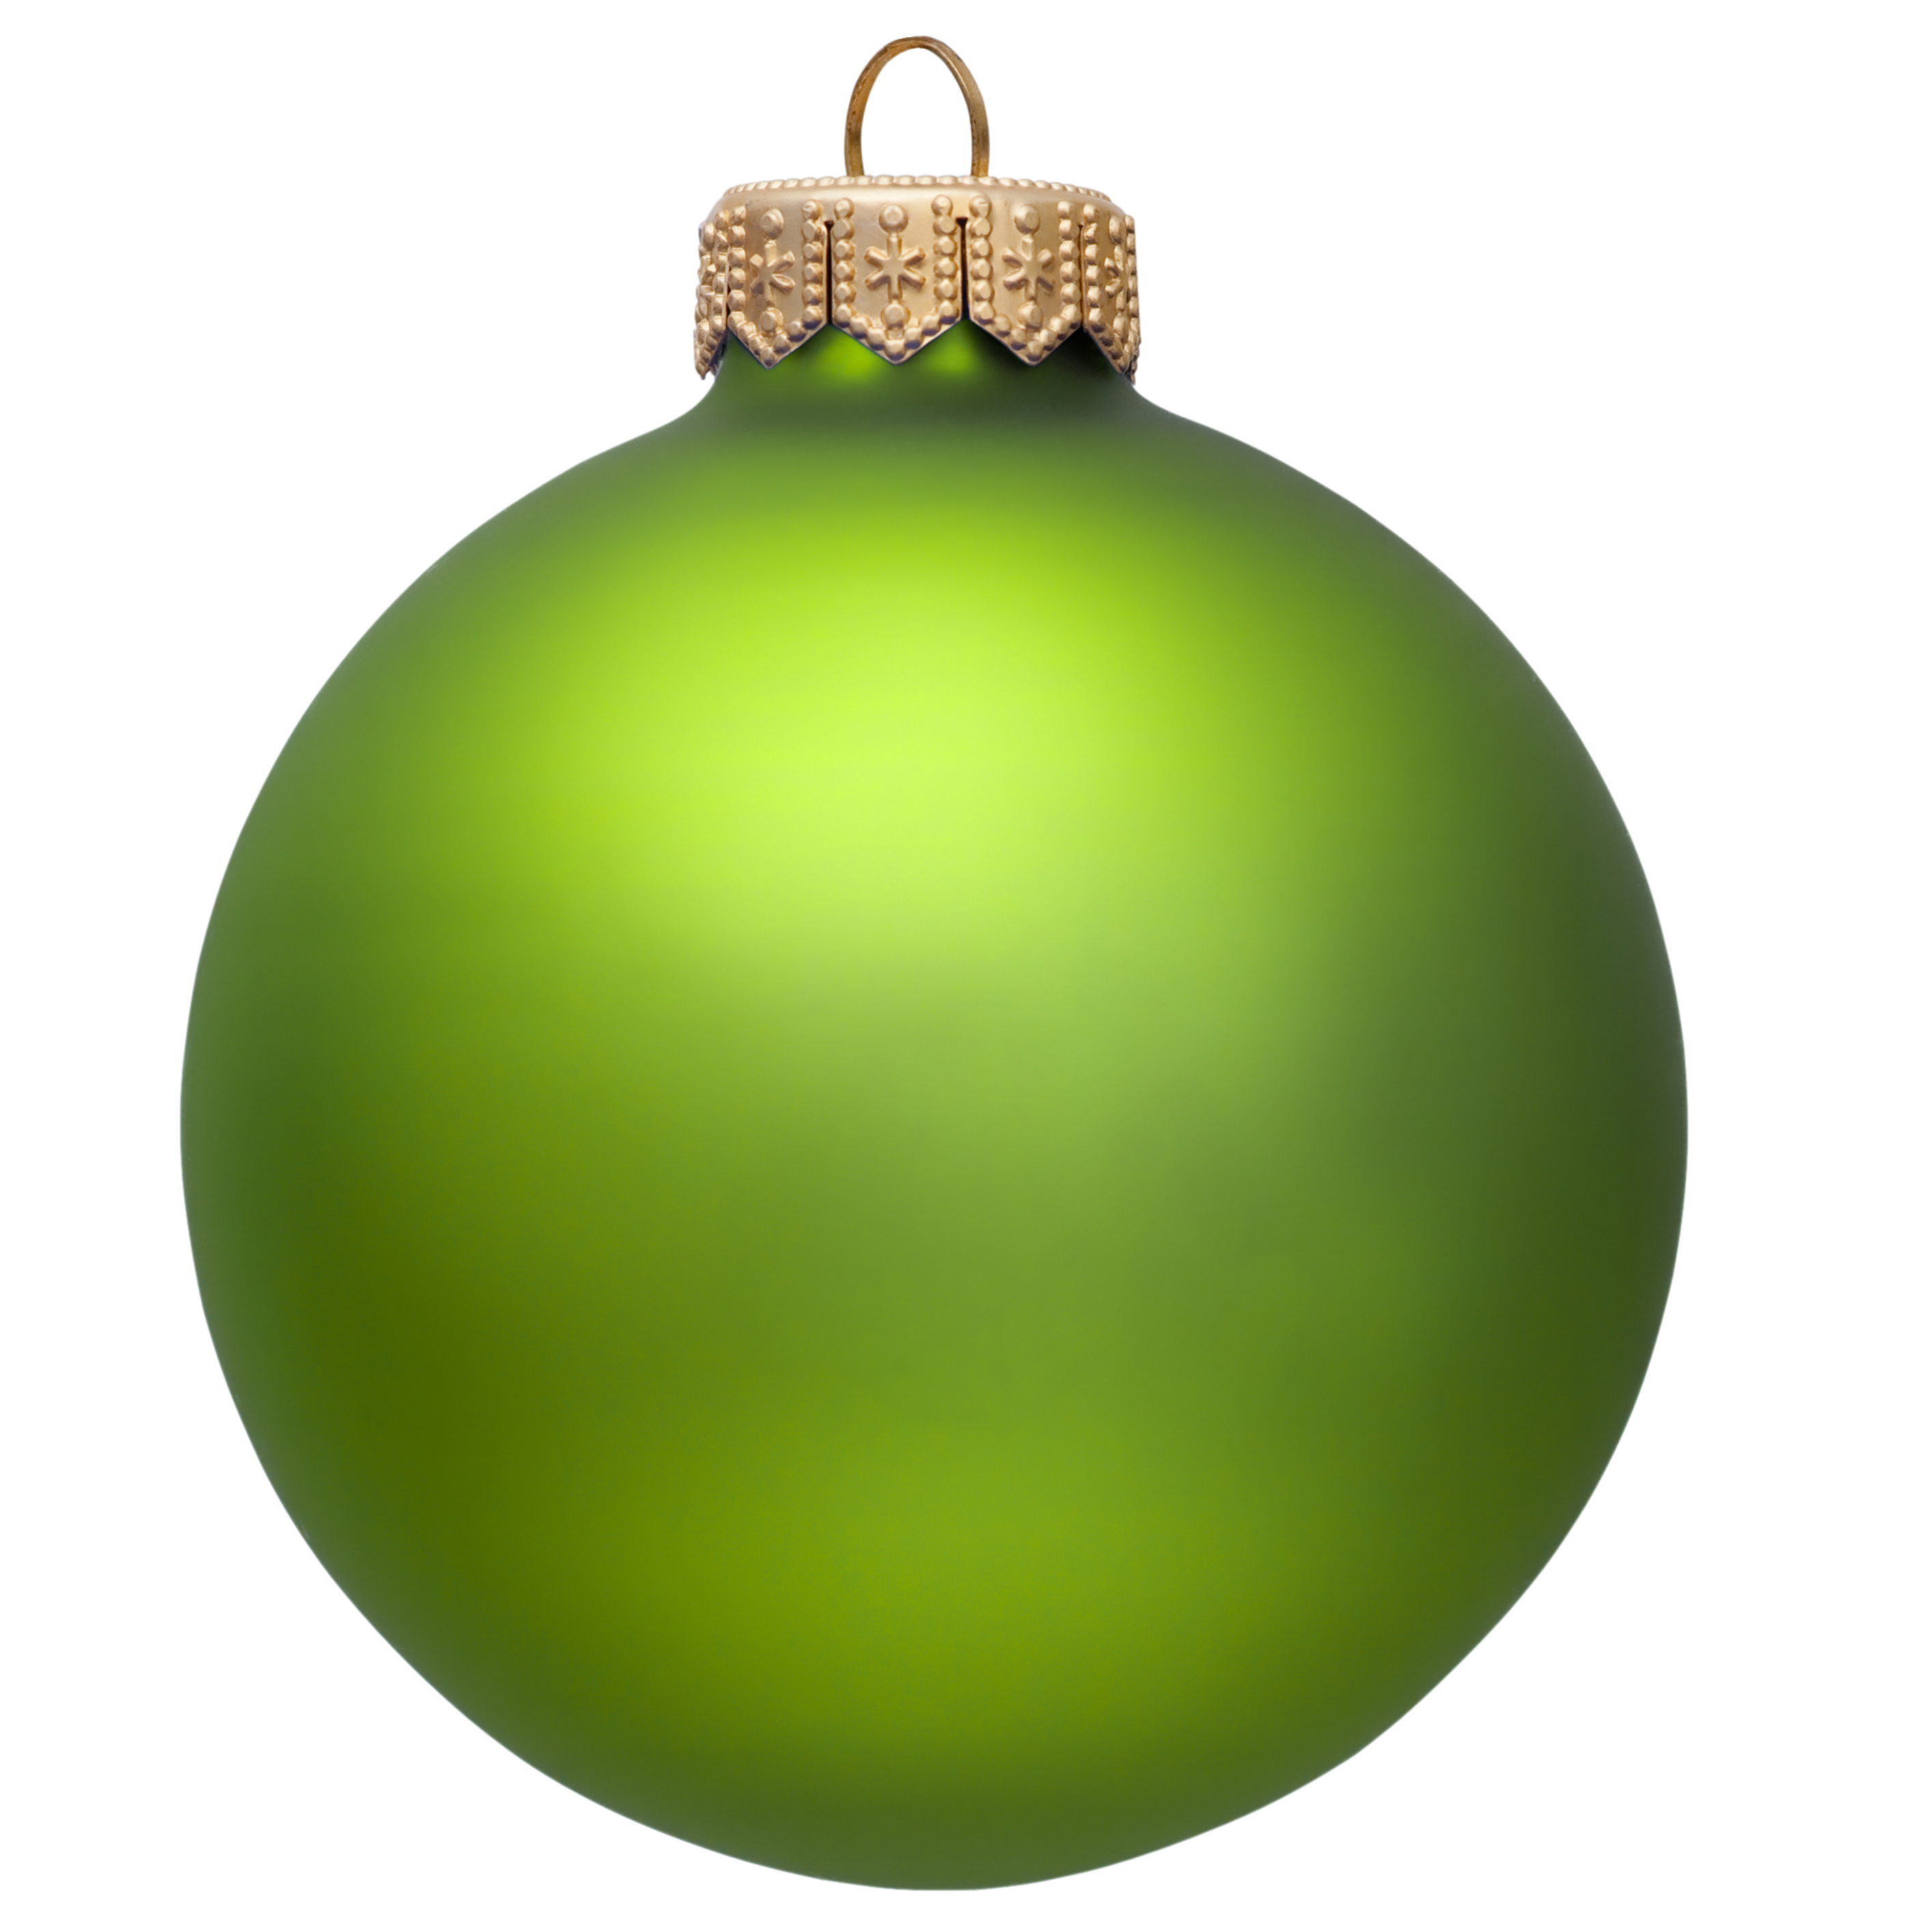 Christmas ornaments clipart jpeg. Green ornament clipartfest christmasbulbgreenjpg